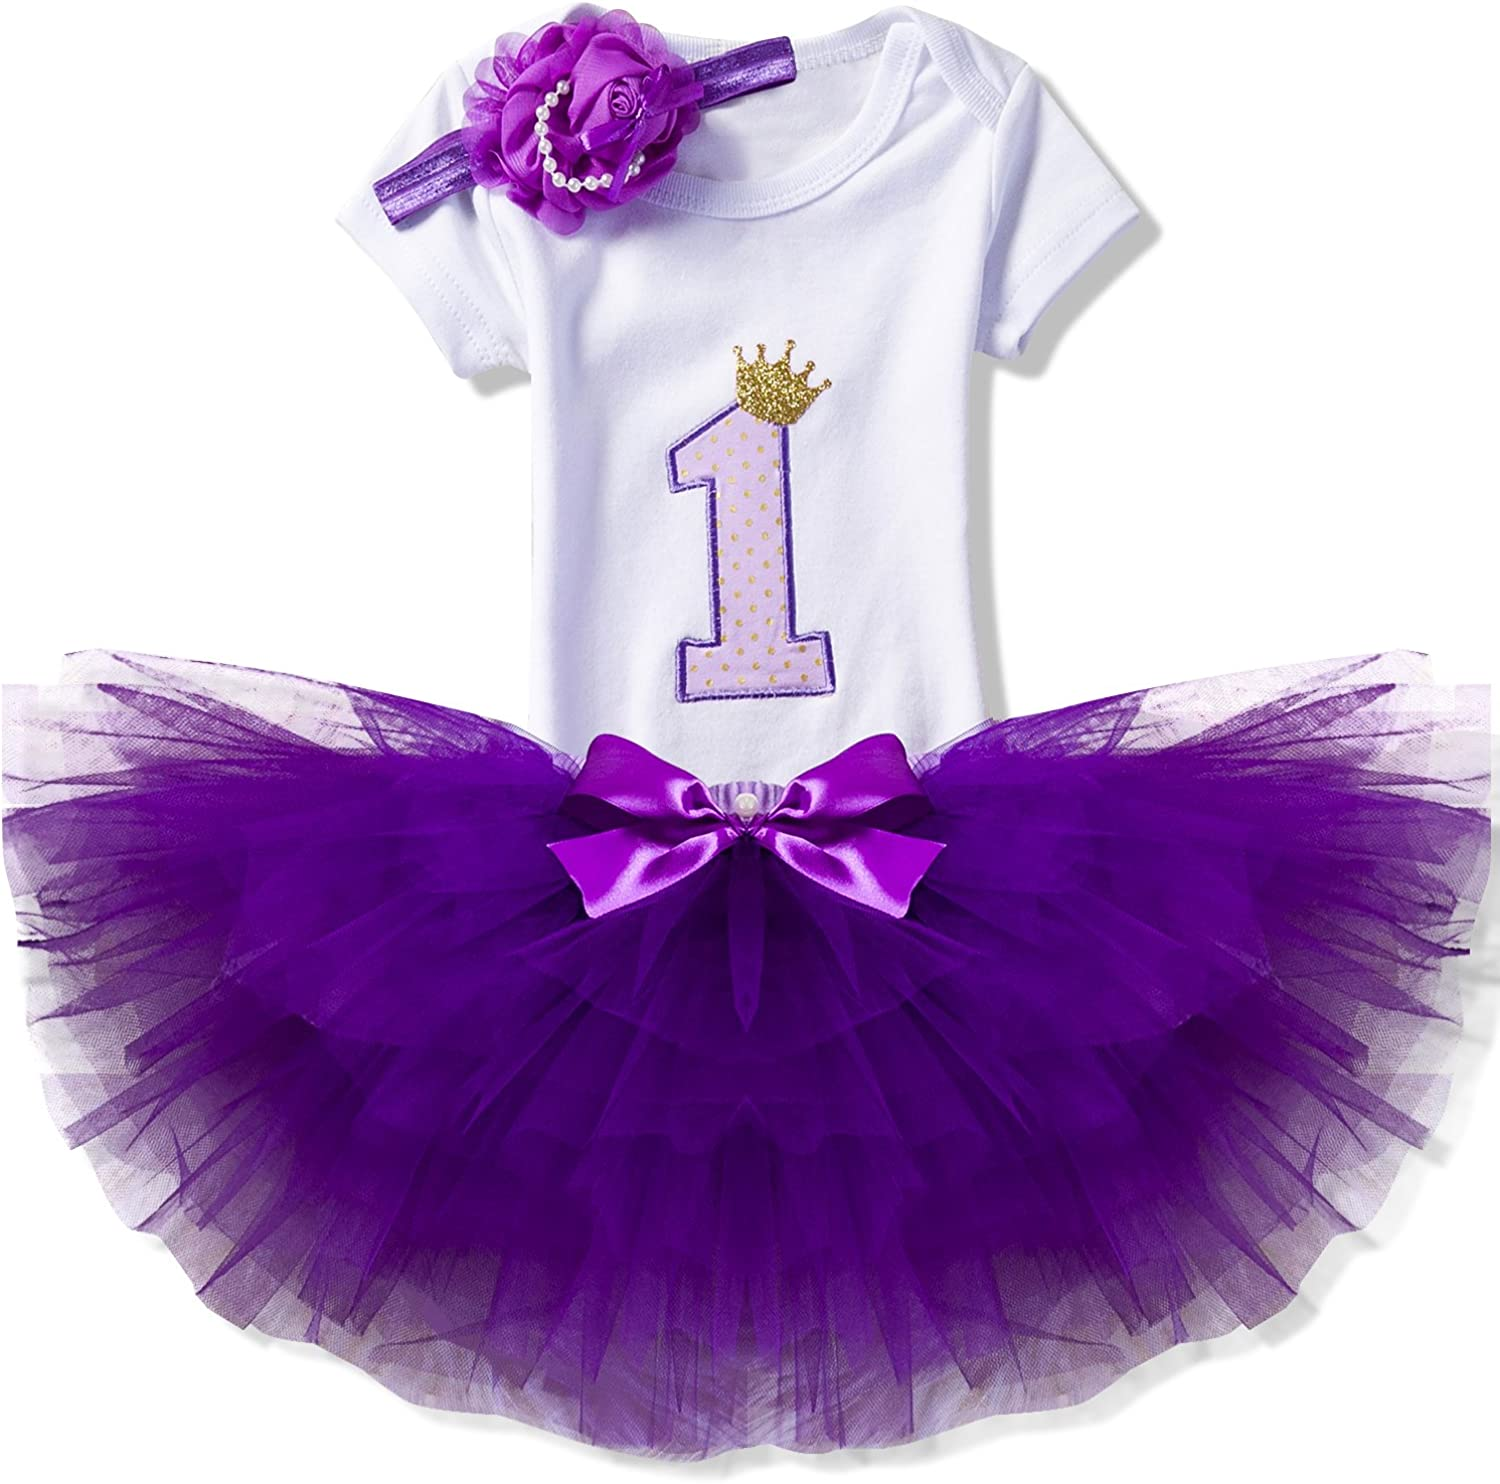 Cutest NIECE PINK tutu romper AUNTY Crown Newborn PRINCESS Love Gift BABY GIRL